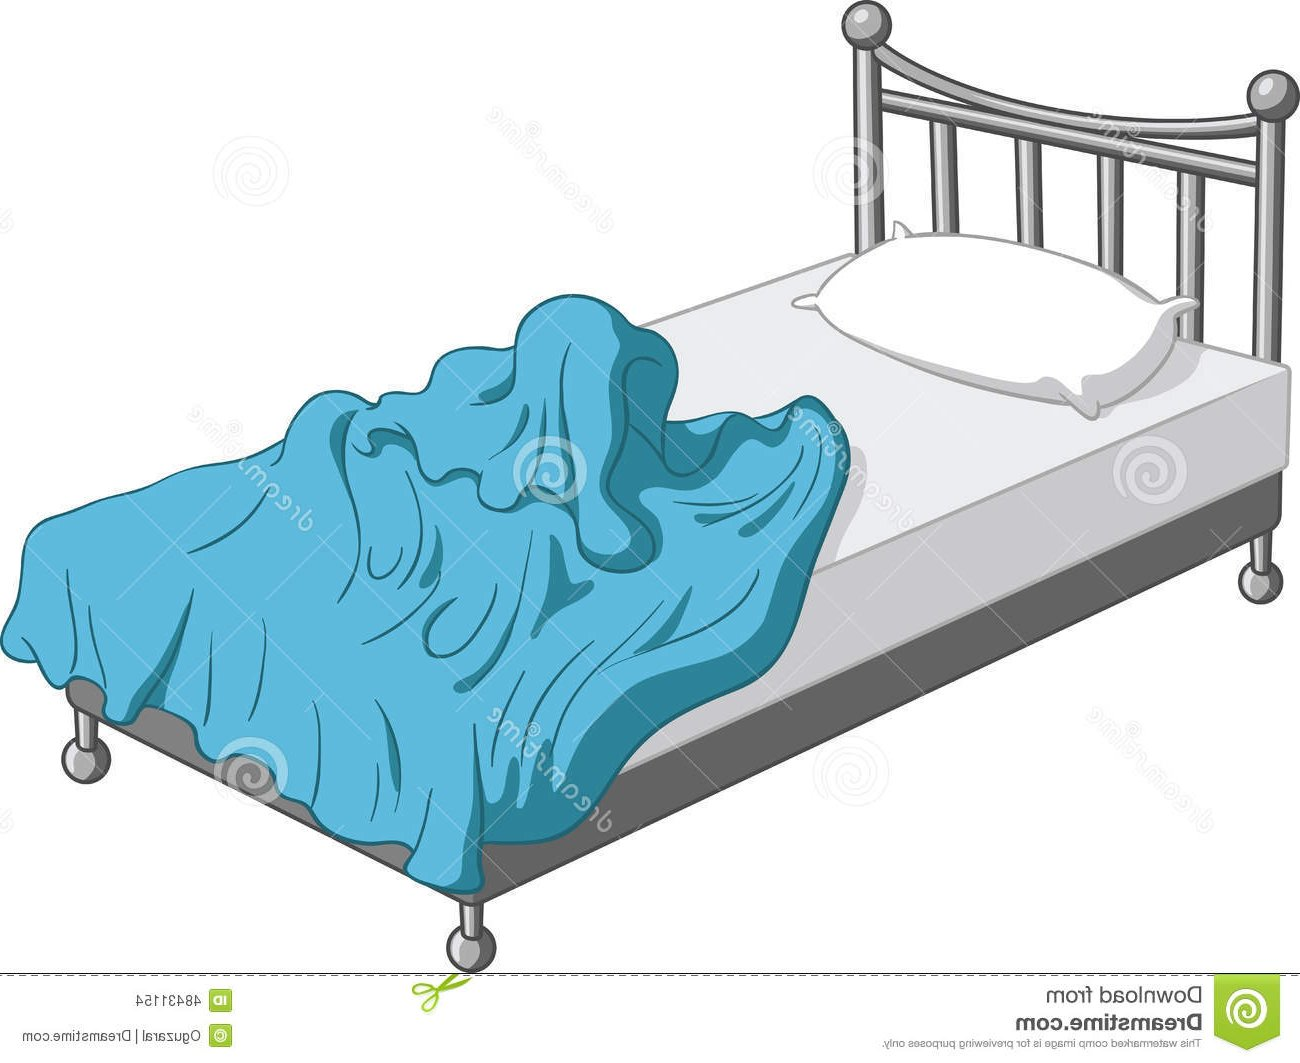 Unmade bed clipart image free stock Messy Bed Cliparts - Making-The-Web.com image free stock